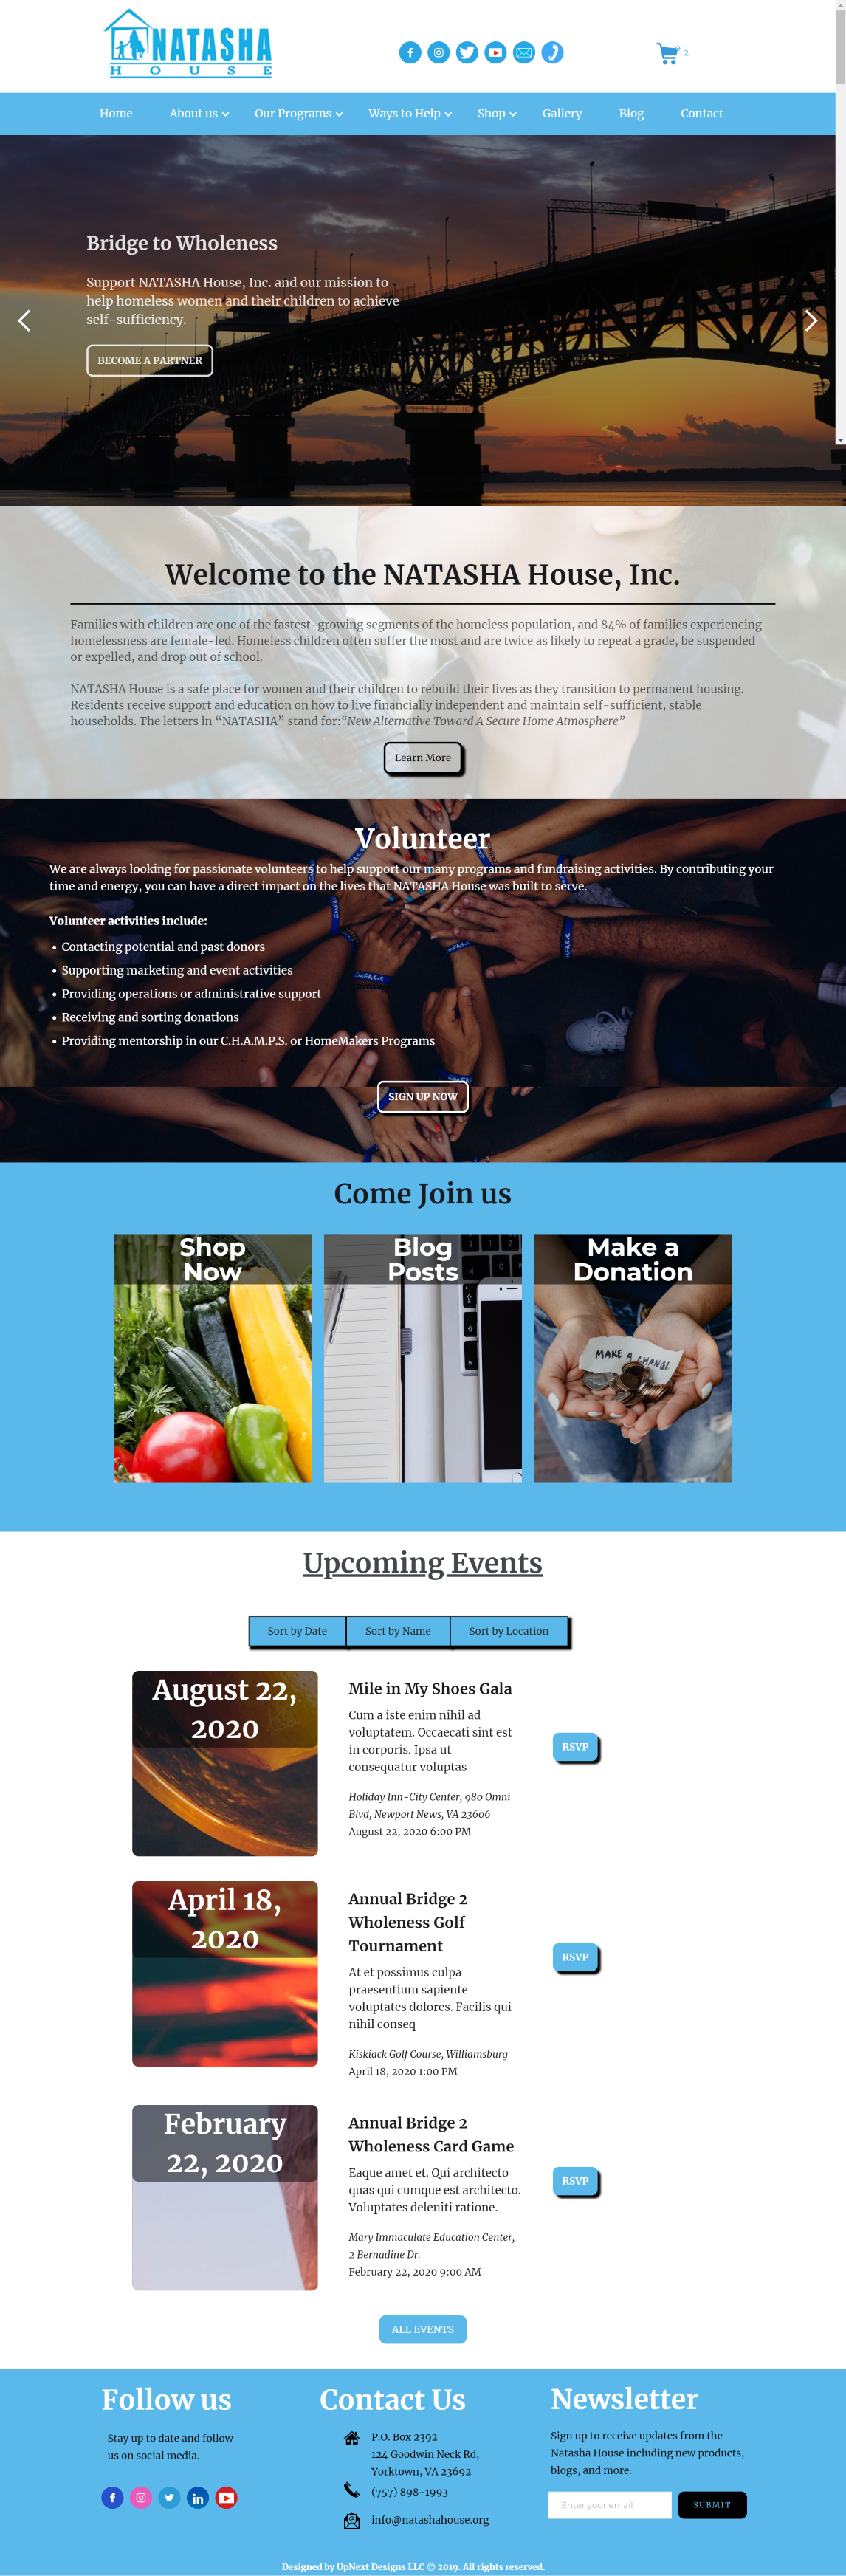 NATASHA House web design by UpNext Designs LLC, About page